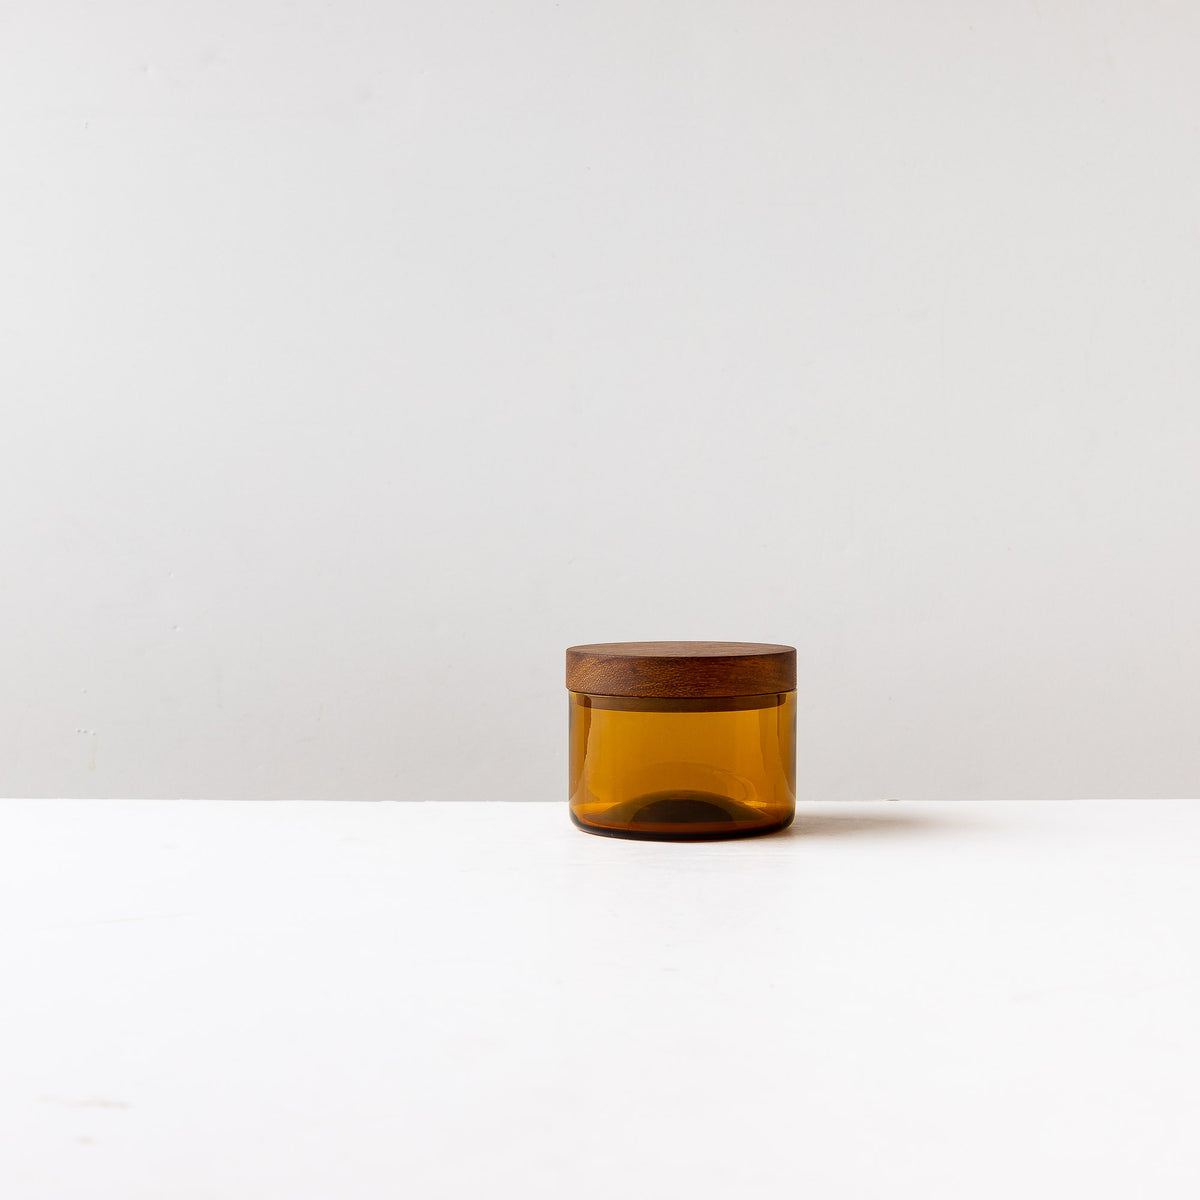 Amber Hand-blown Salt Cellar With Black Walnut Cover - Sold by Chic & Basta